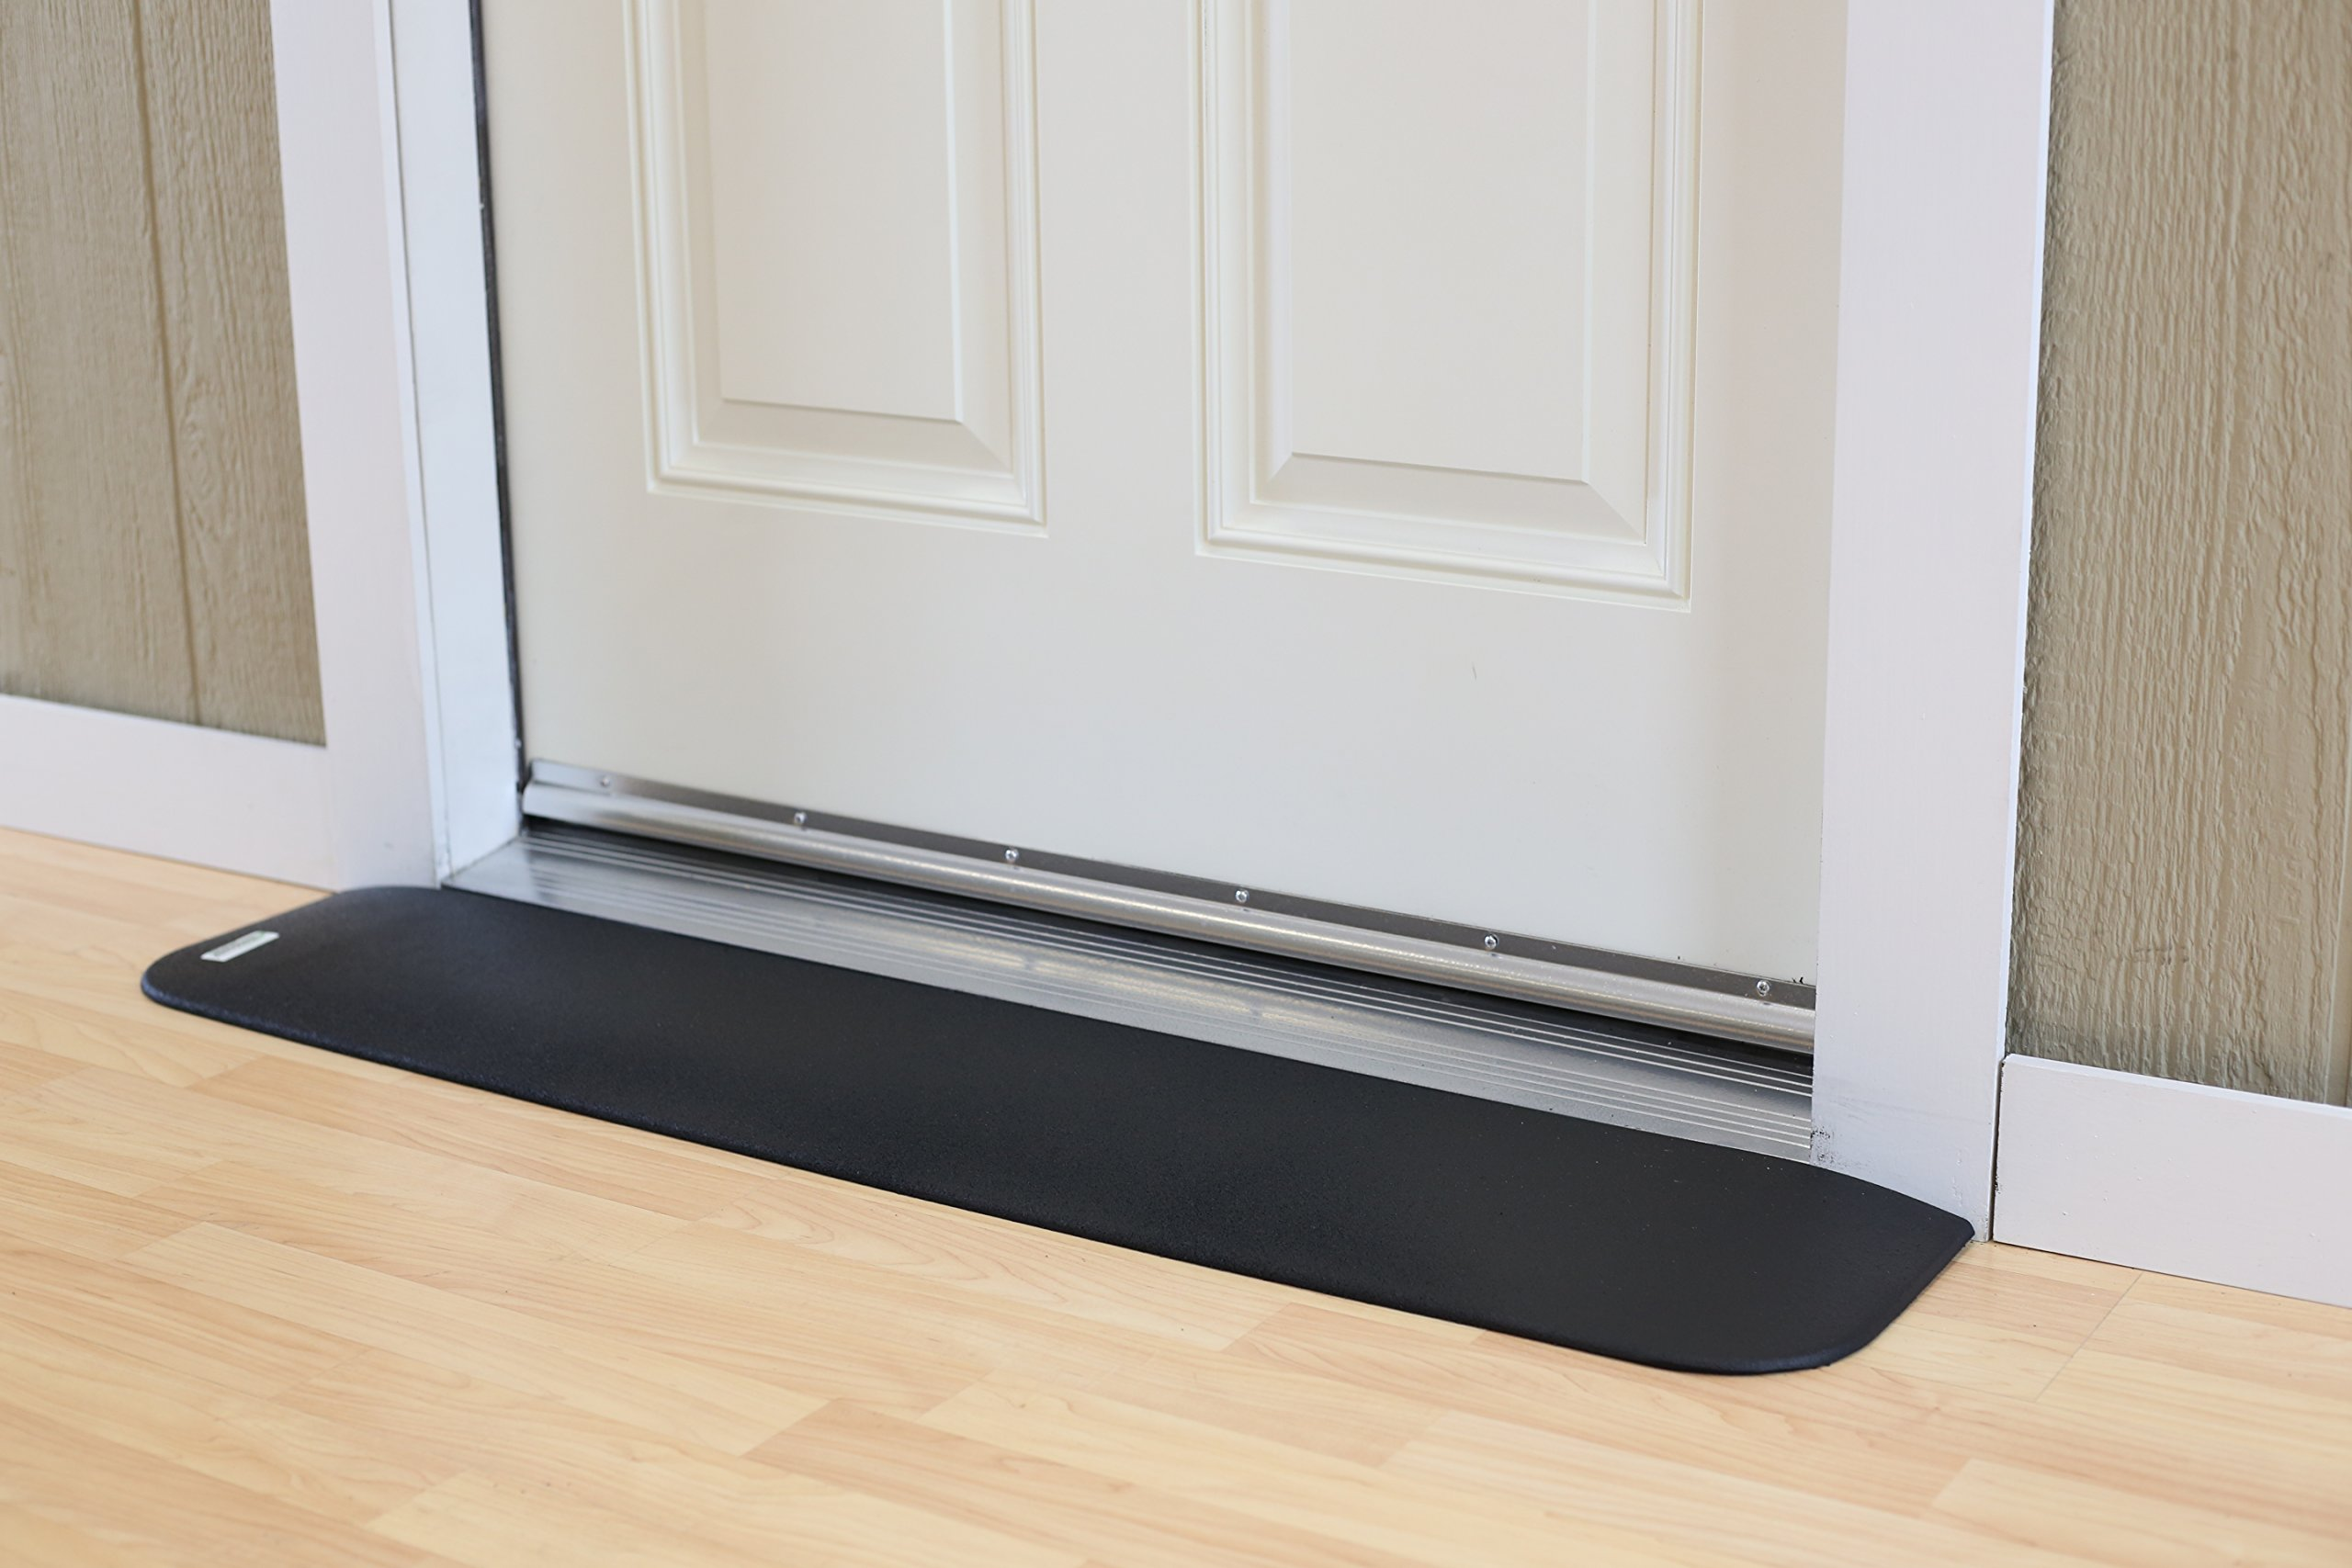 EZEdge Transition Threshold Ramp For a Door Sill, 7/8'' Rise, 7/8'' x 8'' x 41½''